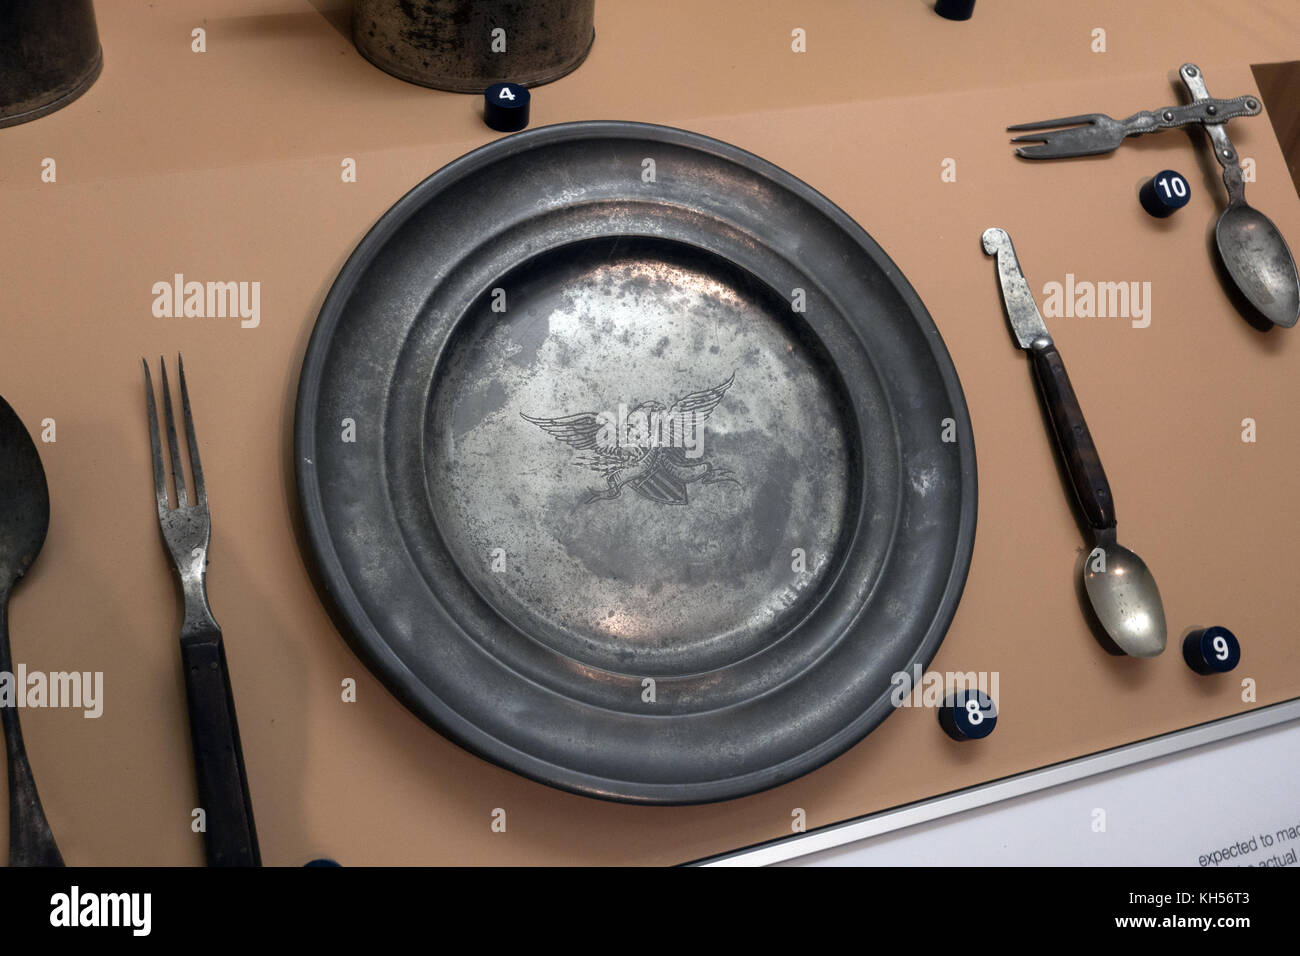 A US Army tin mess plate, National Civil War Museum, Lincoln Circle, Harrisburg, PA, United States - Stock Image